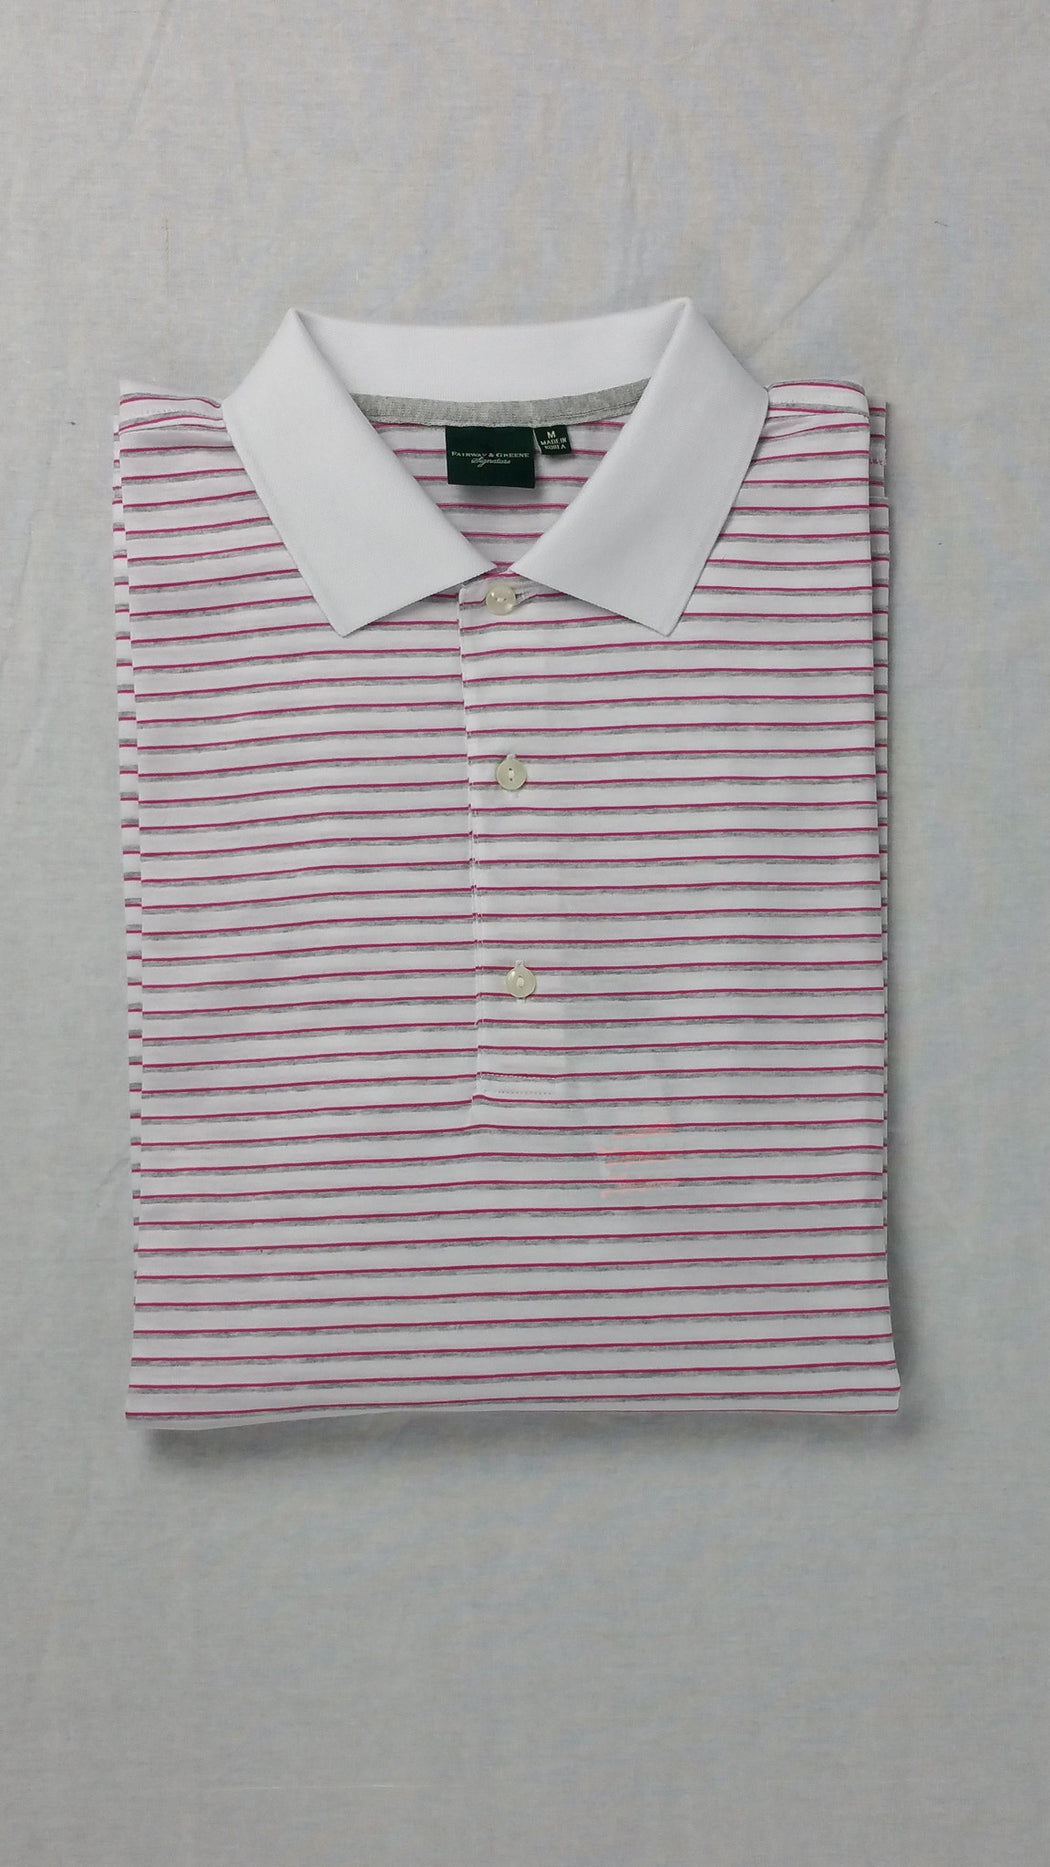 Fairway and Greene White Striped Polo